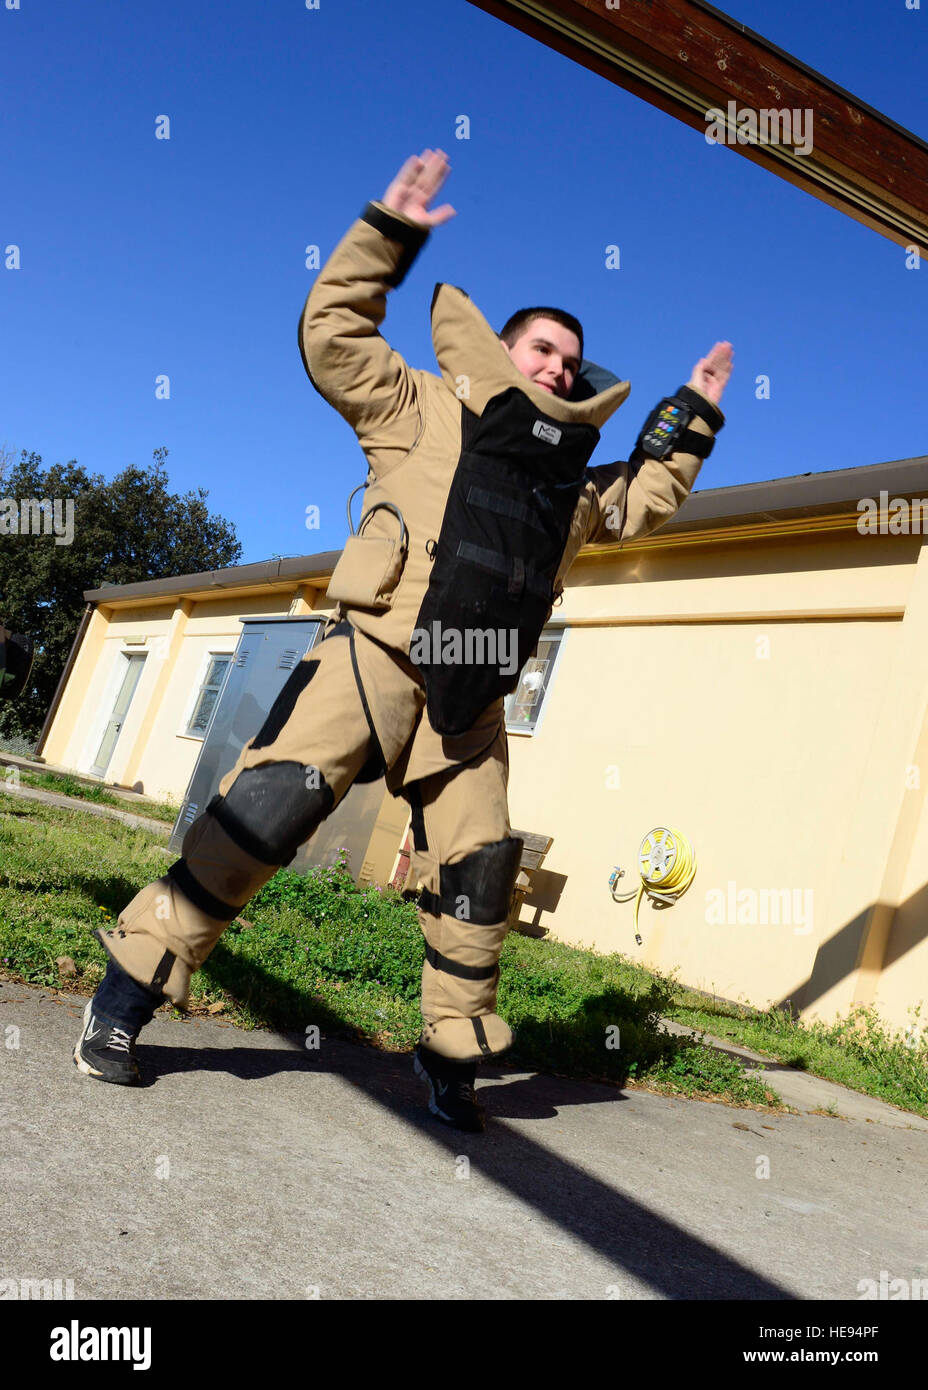 Jason Frost, Aviano student, executes an exercise while wearing a bomb suit, April 2, 2015, at Aviano Air Base, - Stock Image